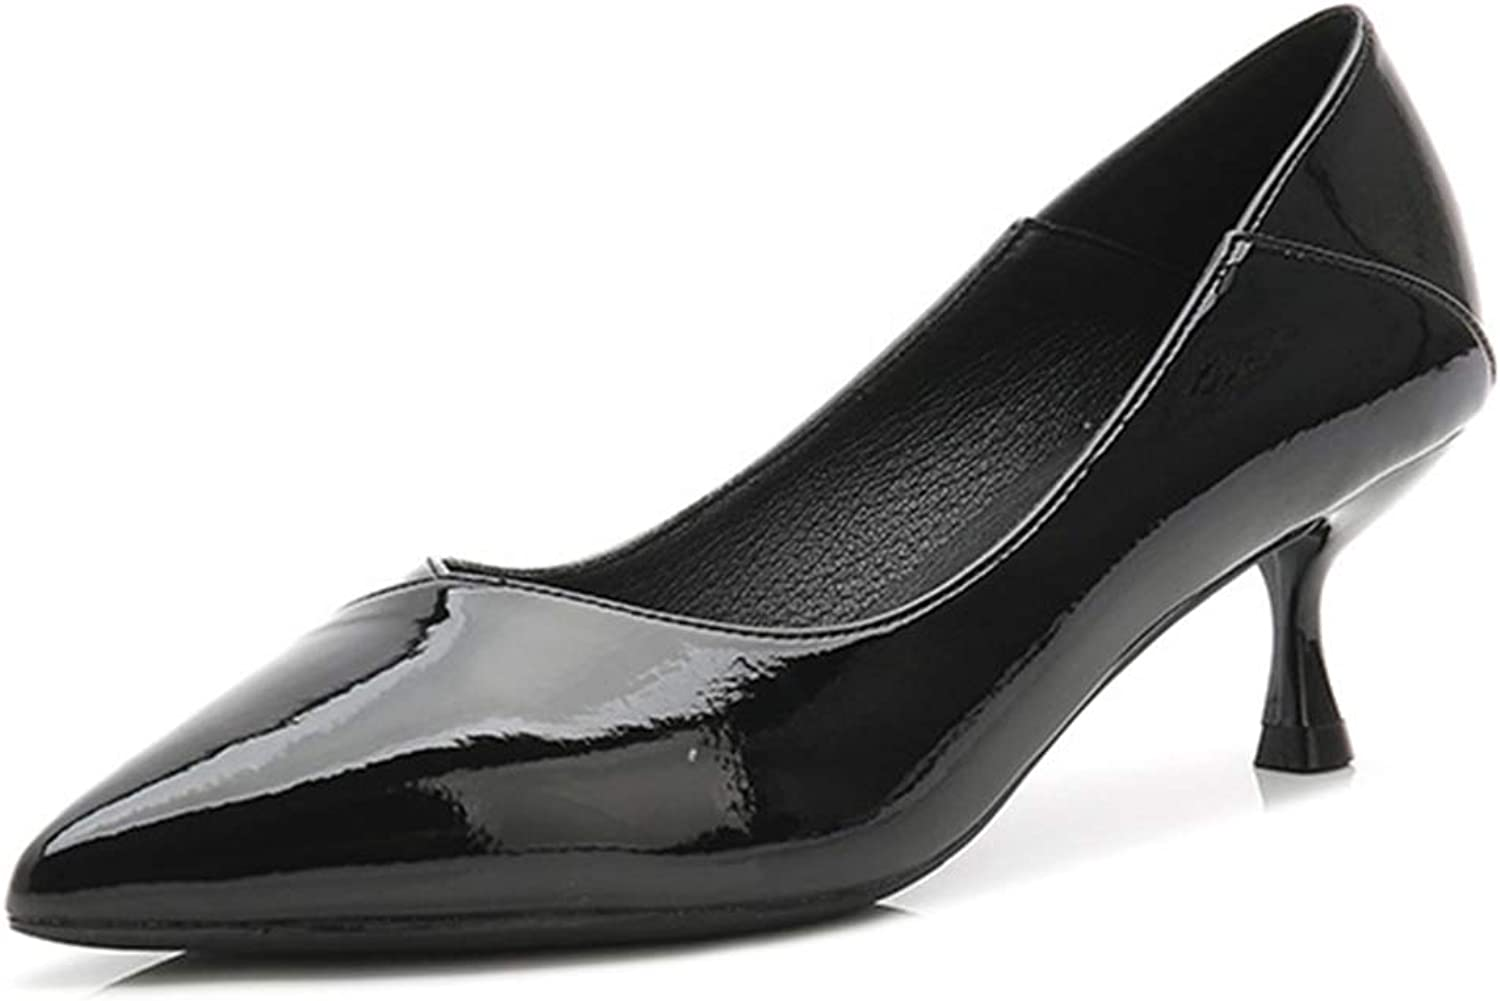 Soulength Women's Classics High Heels Point Toes Patent Leather Small Plus Size Ladies Pumps Non Slip Rubber Comfortable Fashion Work Office shoes(WH06,Black)